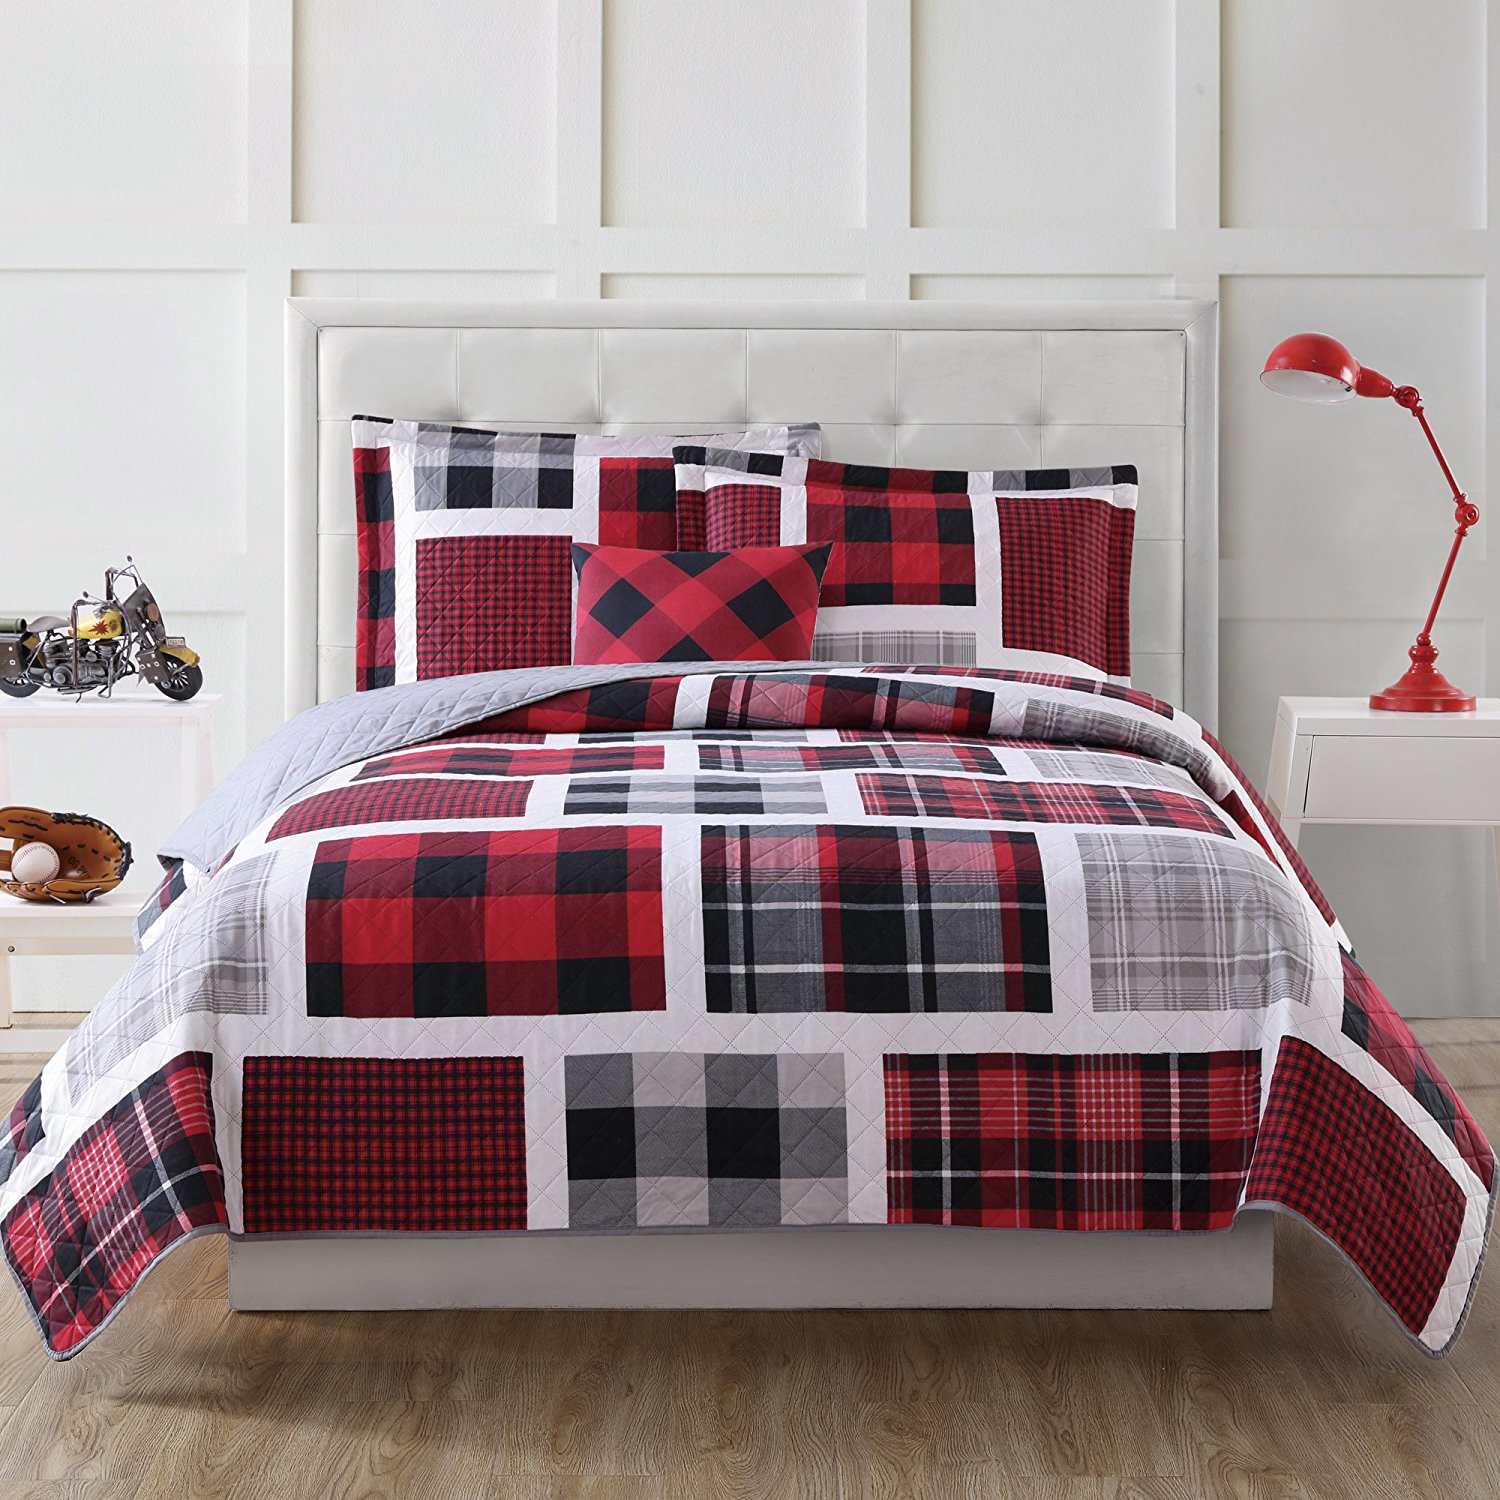 3 Piece Boys Classic Rectangle Plaid Theme Quilt Twin Set, Beautiful Lumberjack Madras Checkered Lodge Hunting Themed, Tufted Reversible Bedding, Cozy Warm Sporty Style, Vibrant Colors Red Grey Black